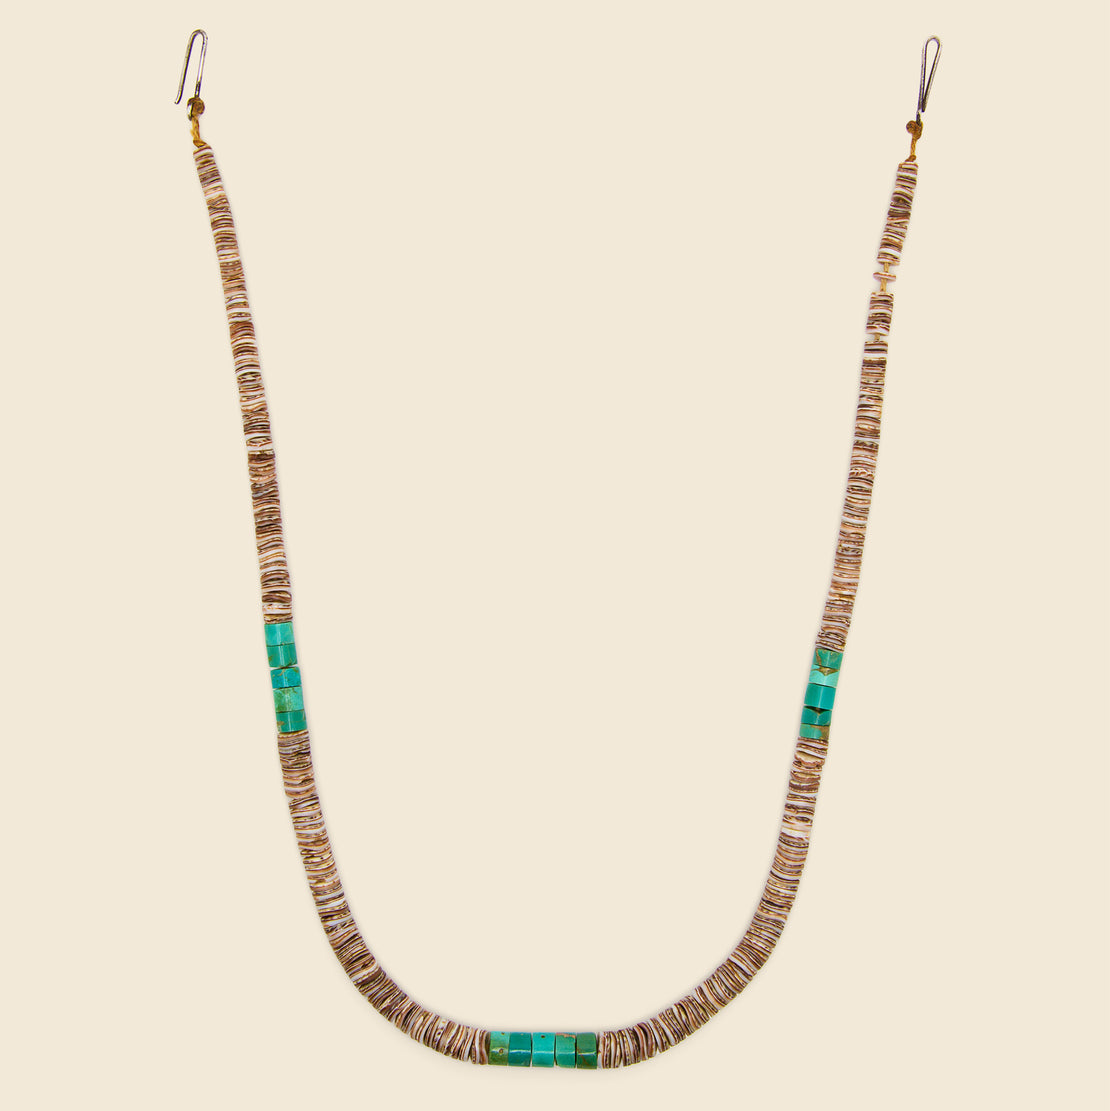 Vintage Heishe Necklace - Turquoise & Pin Shell